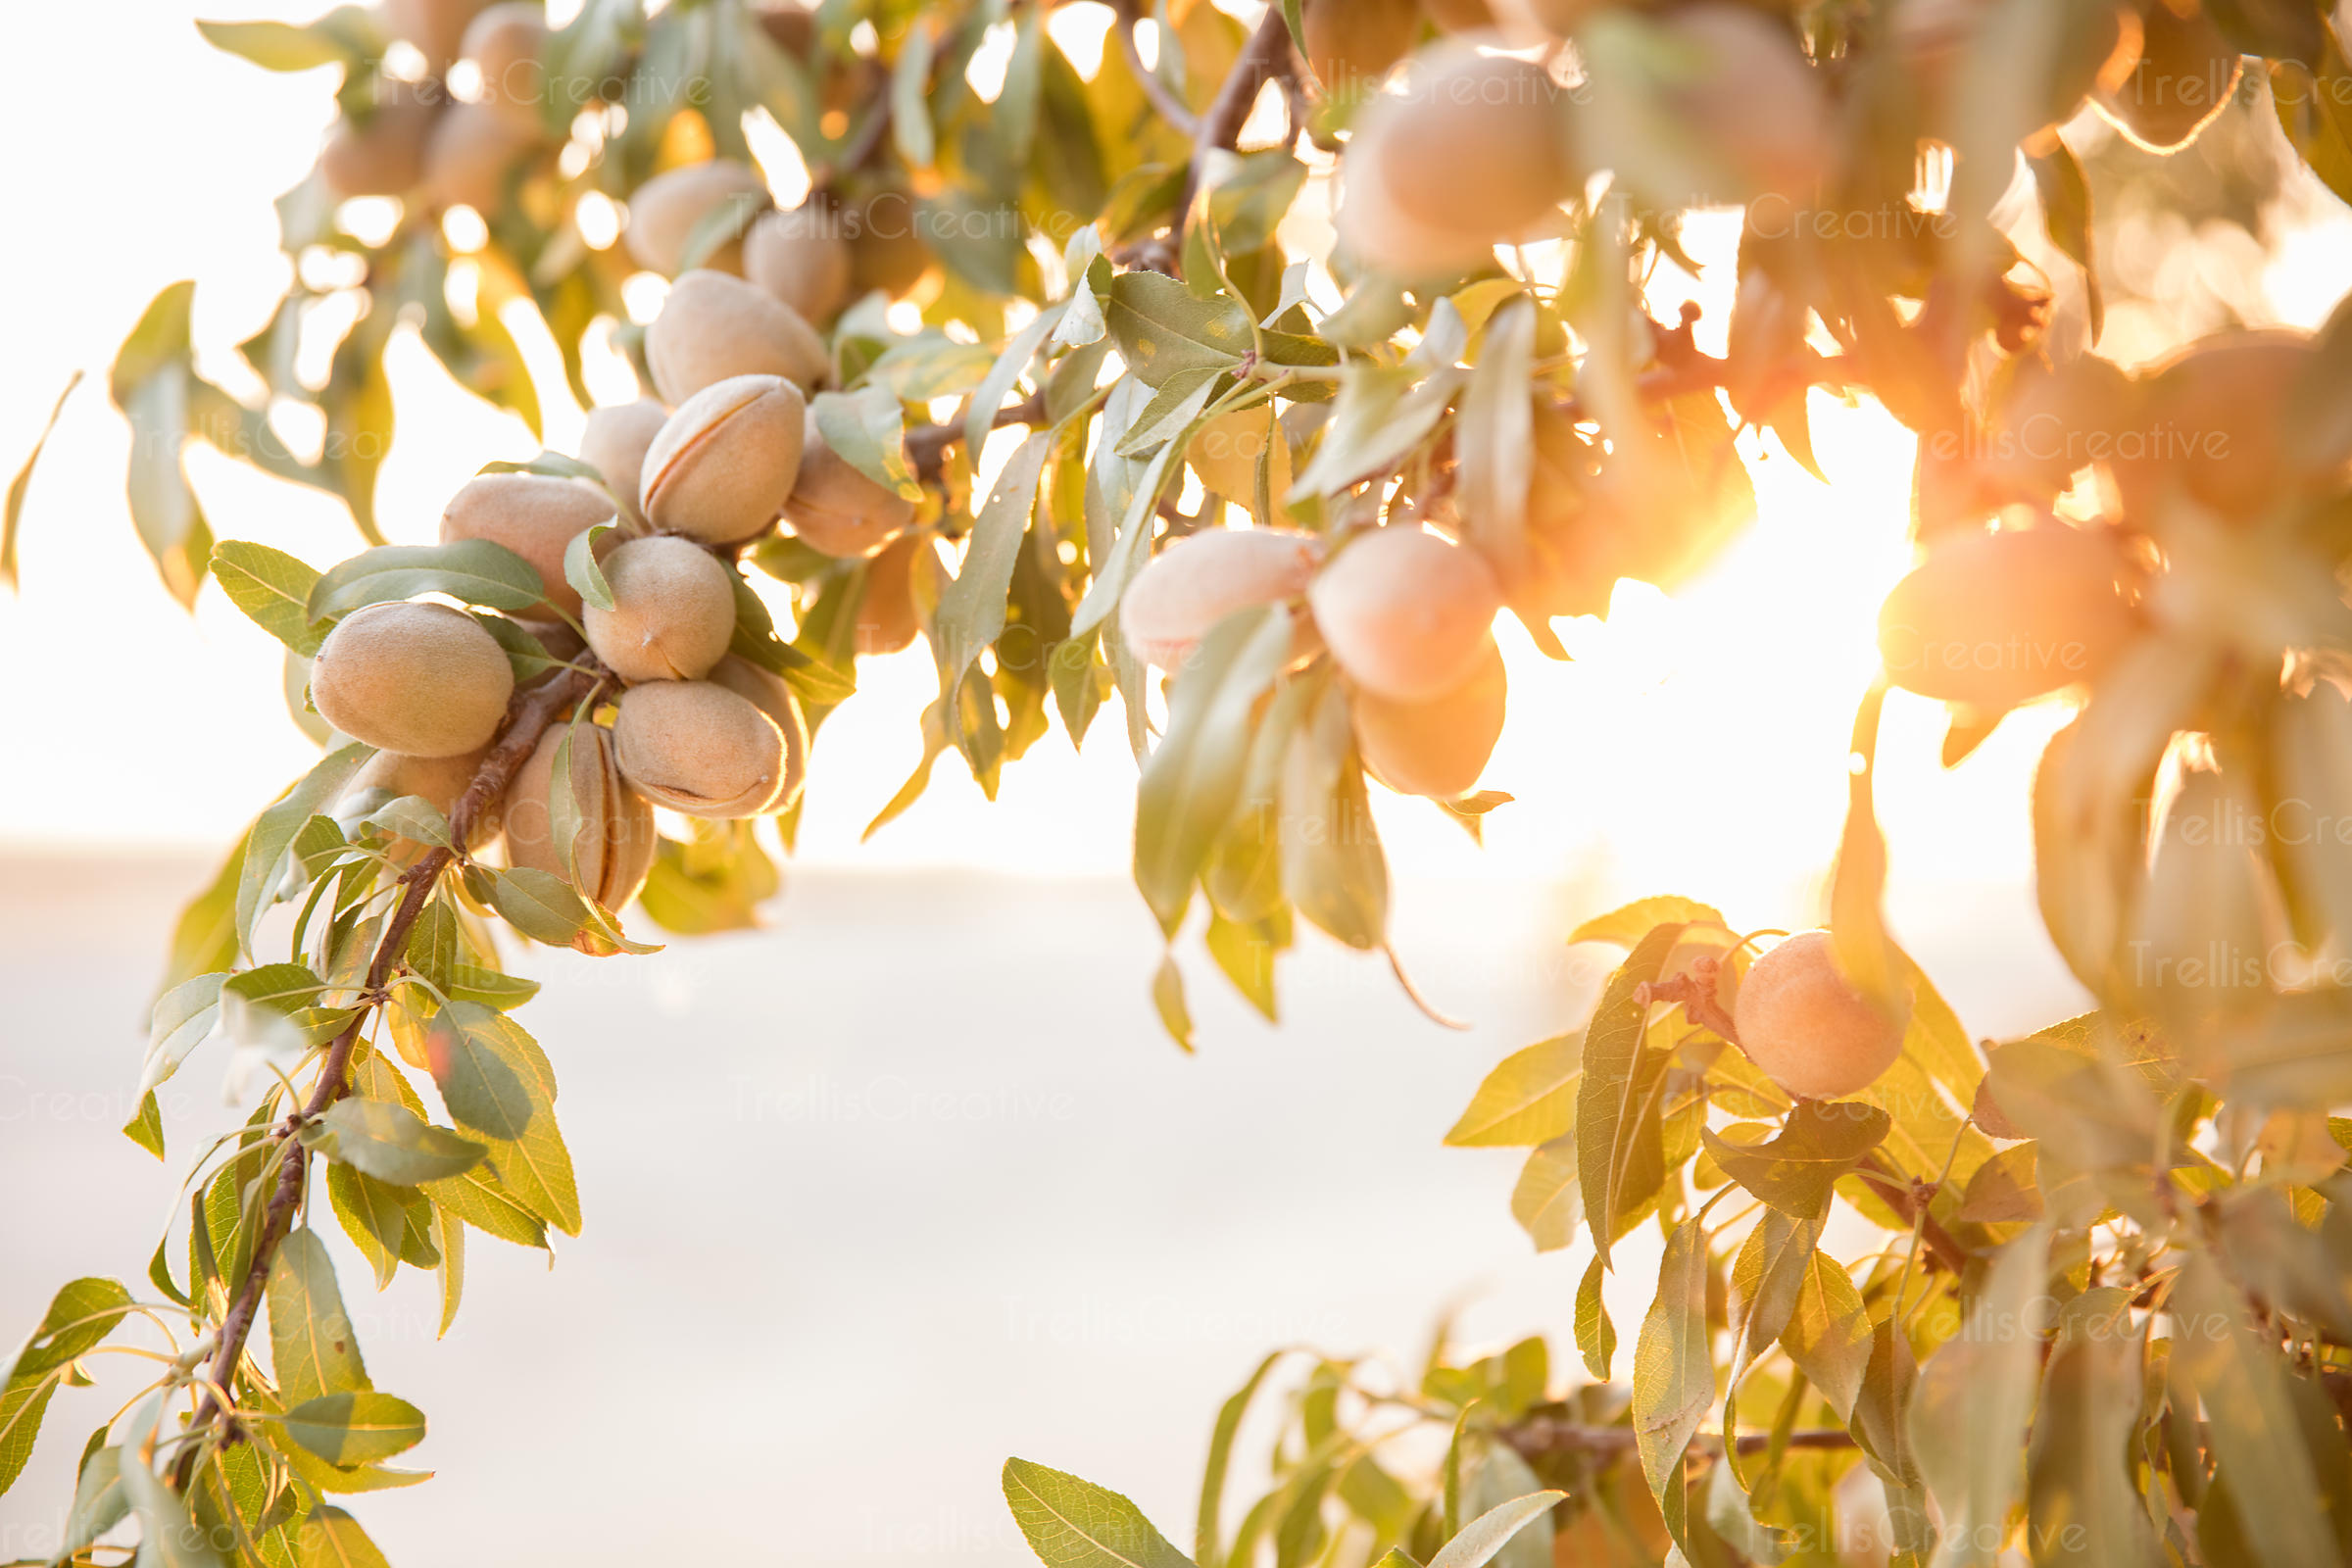 Almonds on tree branch with the sun behind